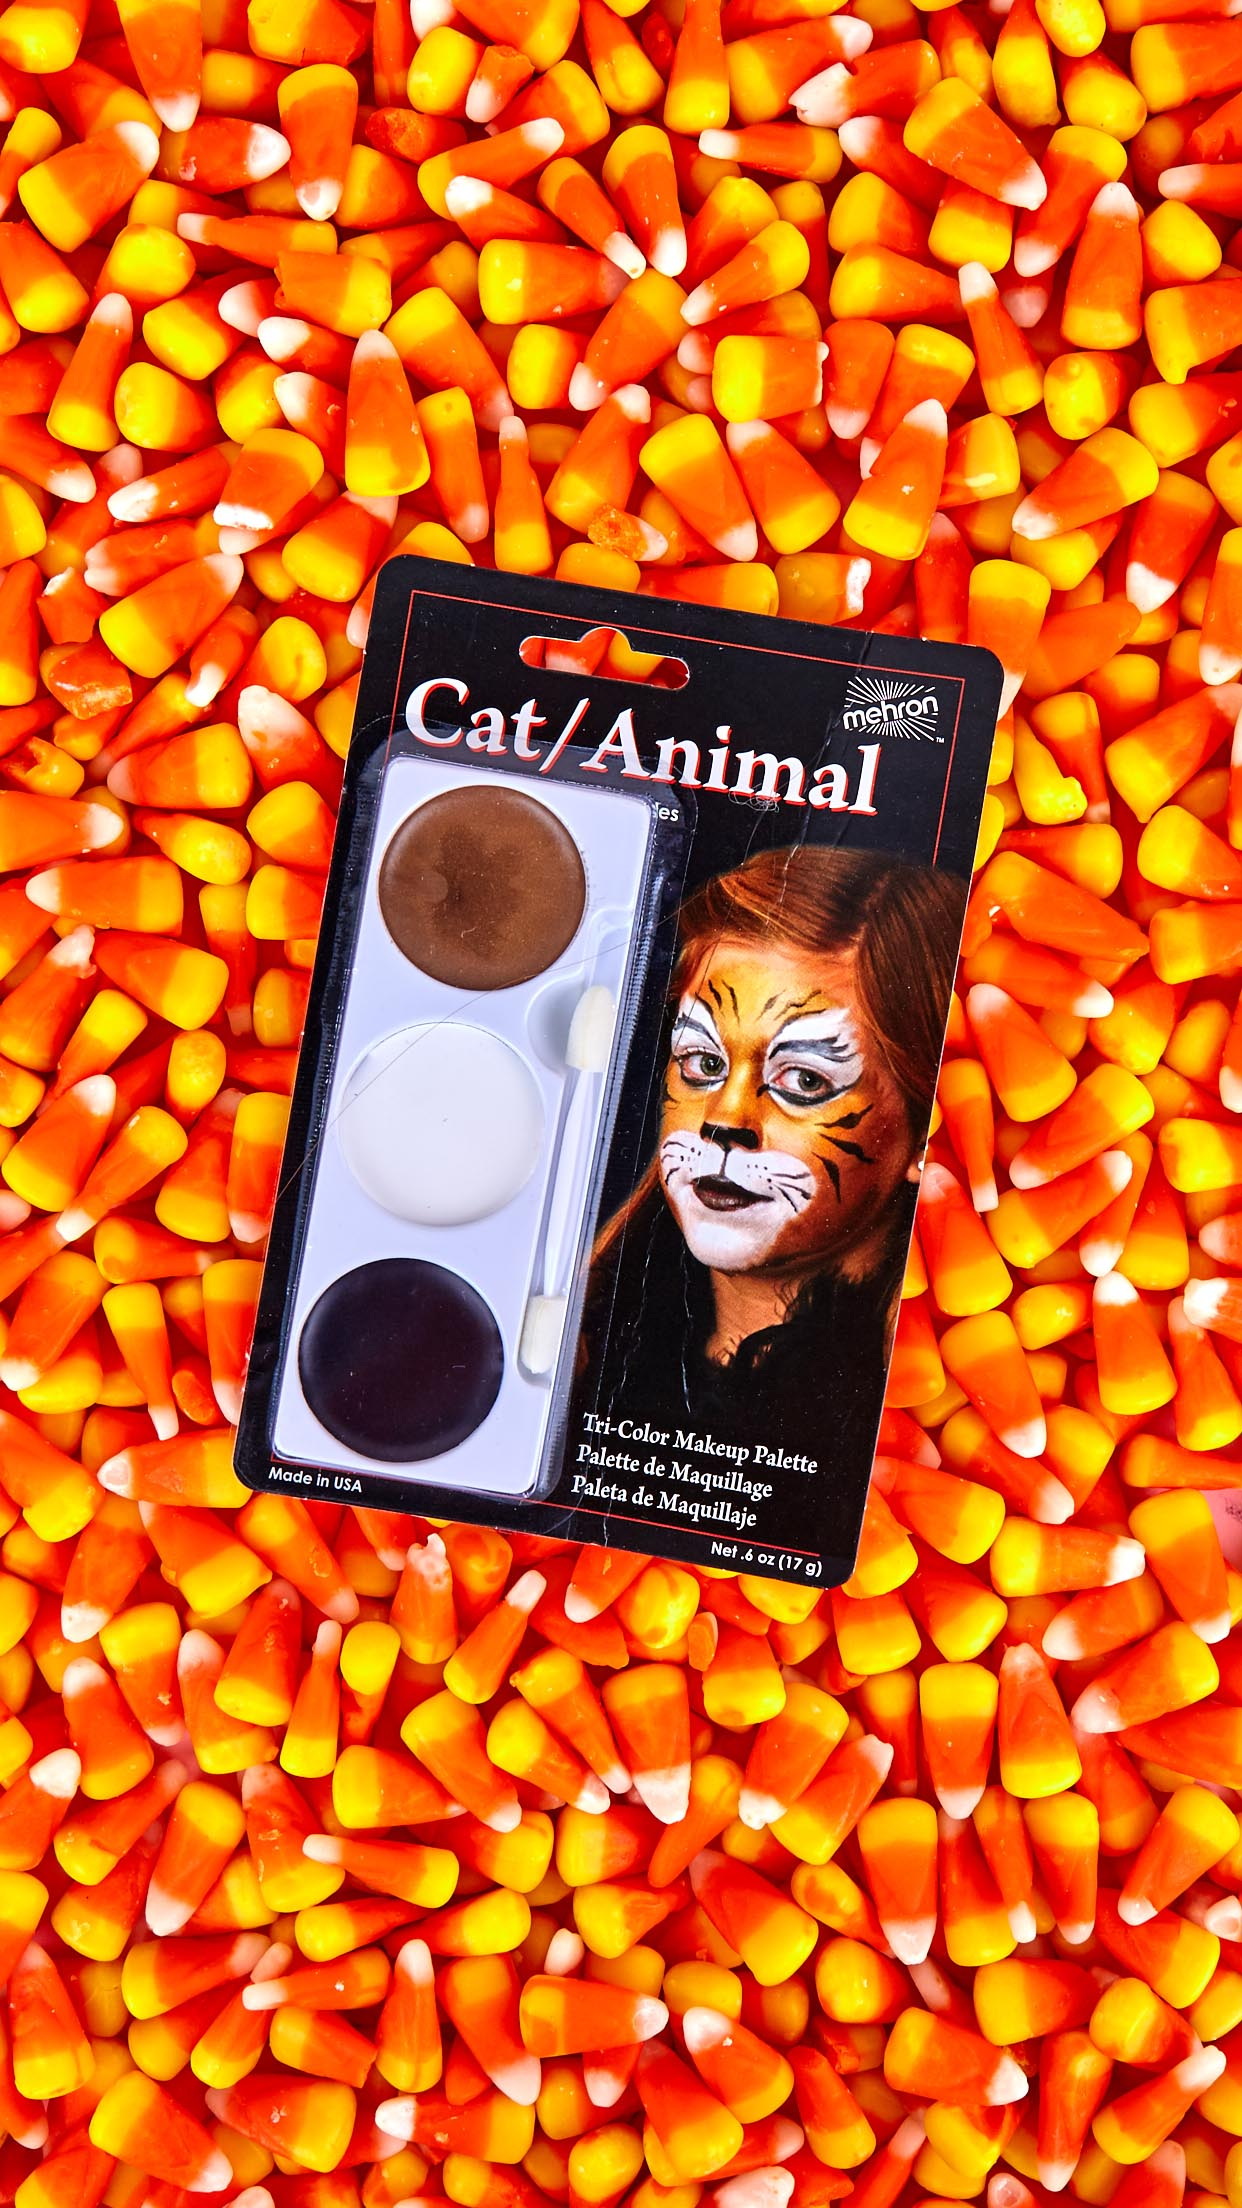 Tri-Color Makeup Palette Cat/Animal